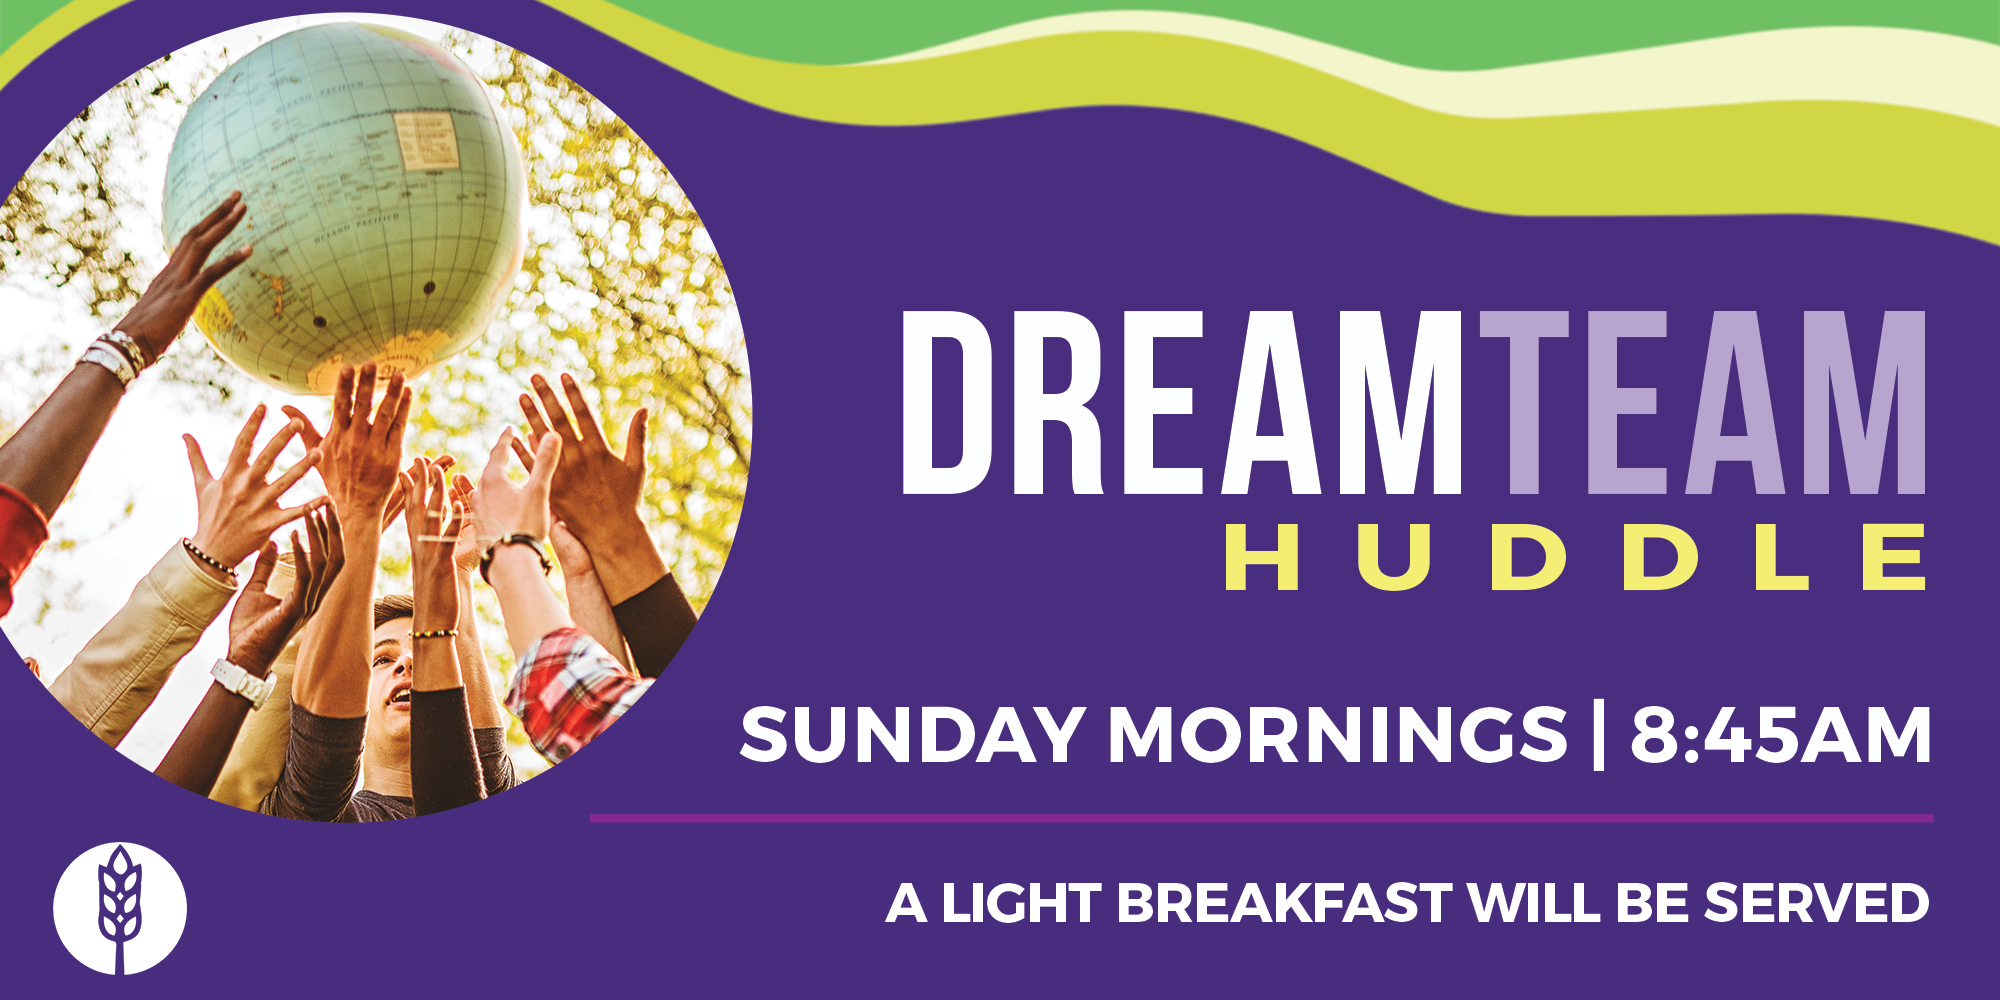 DreamTEAM Huddle Sunday Mornings 8:30 AM A Light Breakfast Will Be Served